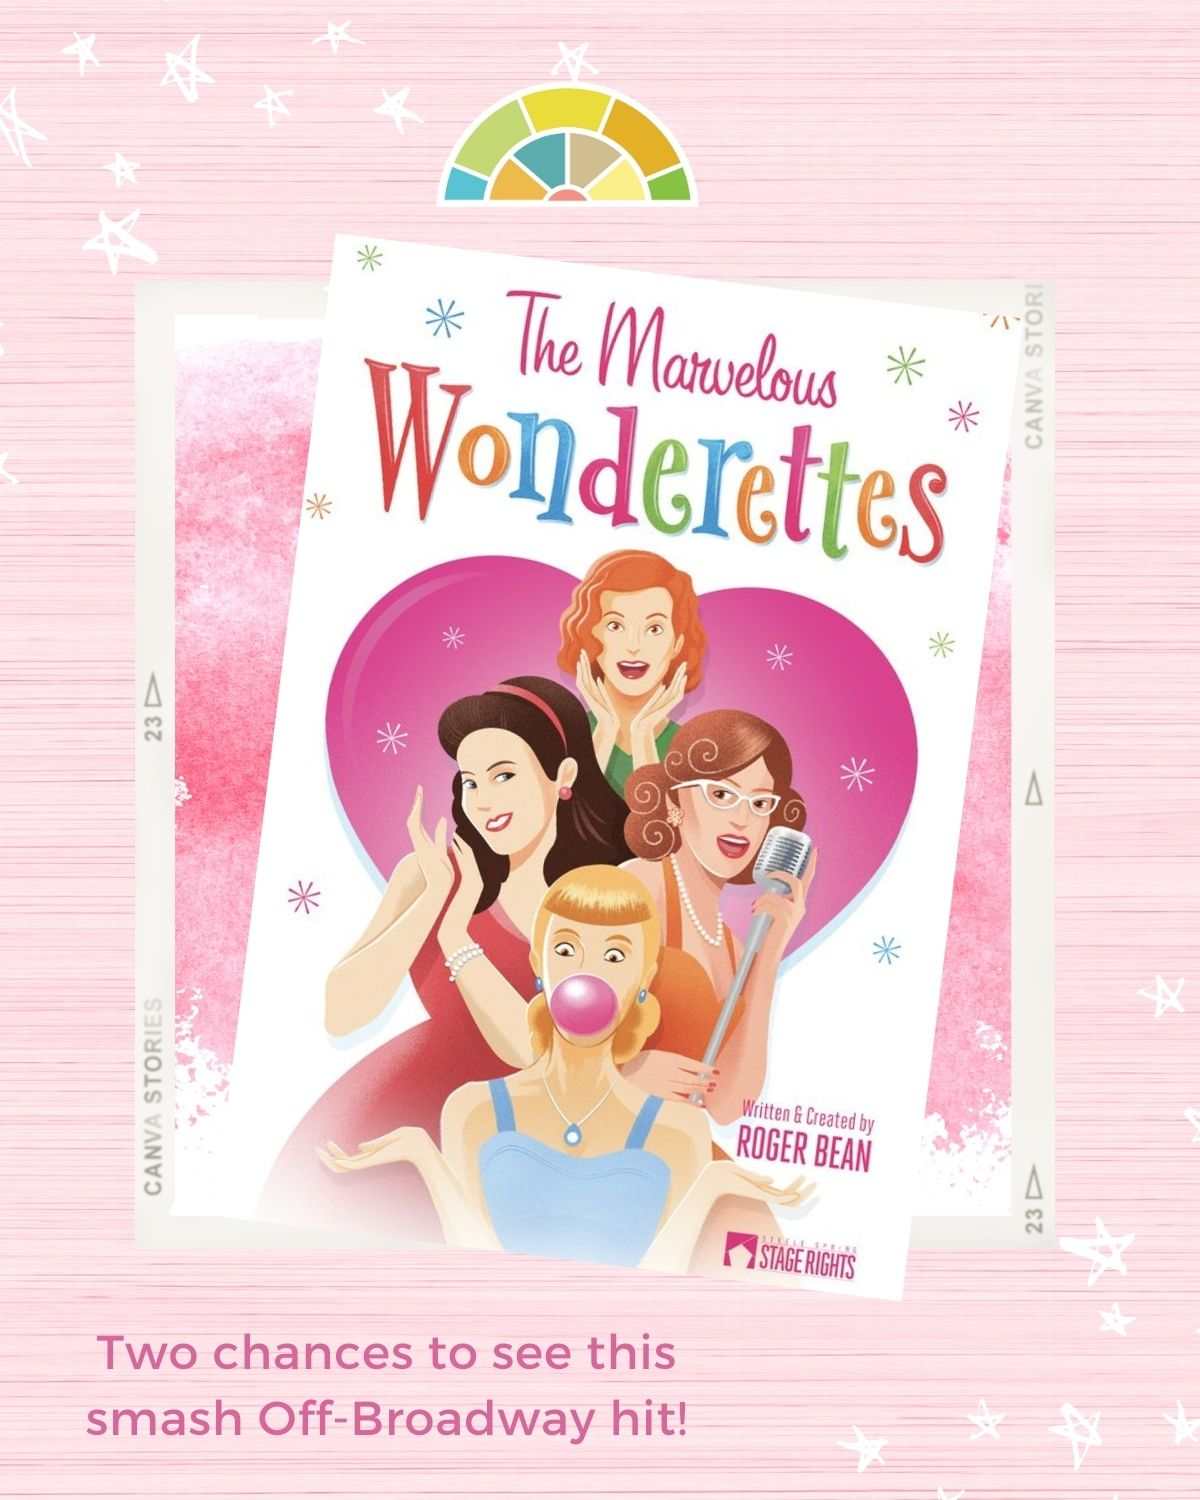 The Marvelous Wonderettes (March 6)